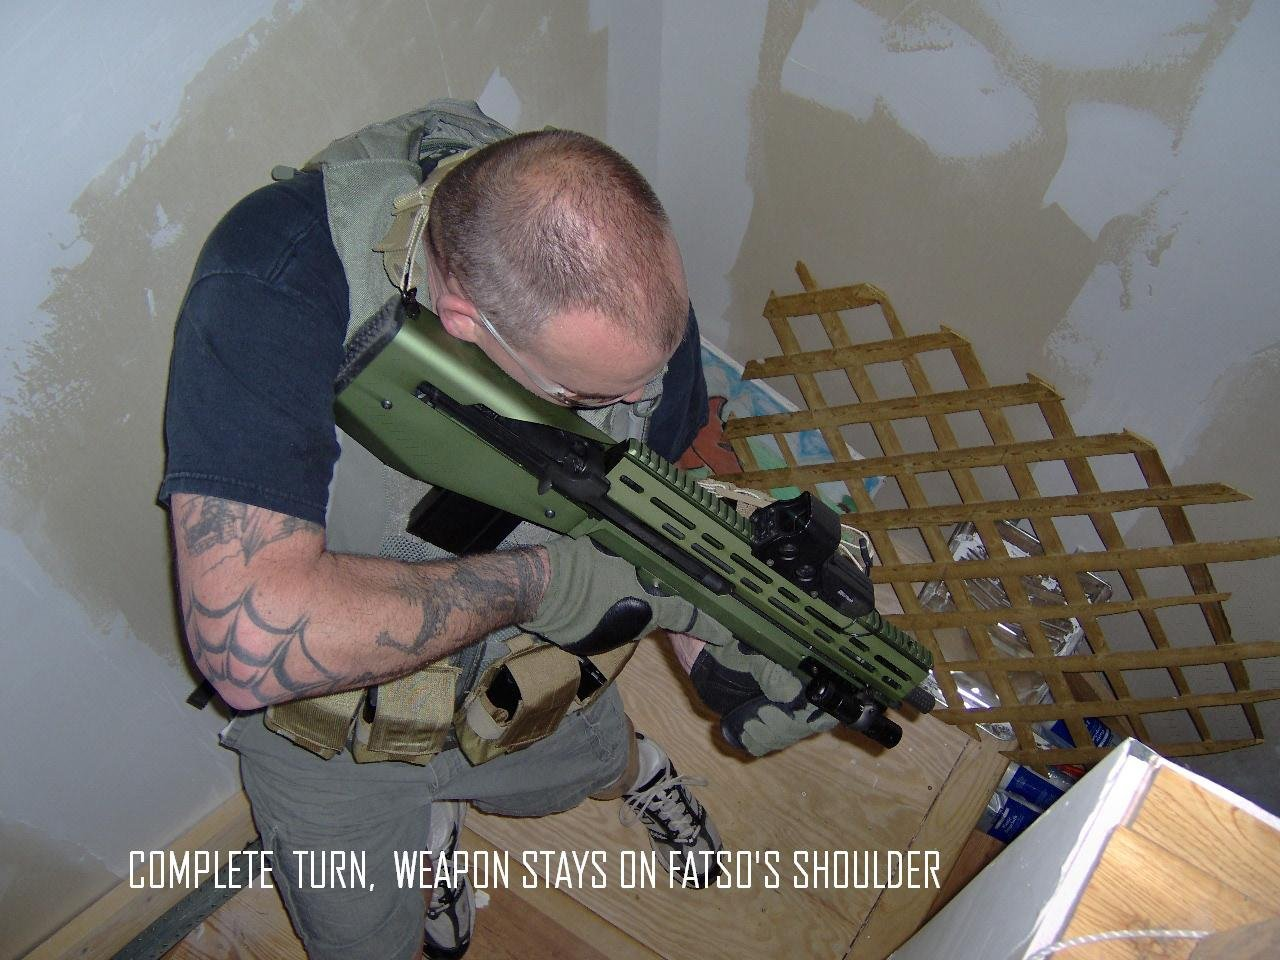 BullDog 762 Bullpup M14 M1A Rifle Chassis Stock System NYPD Det. Patrick OConner Stairs low <!  :en  >GEN 3 SRSS BullDog 762 BullPup M14/M1A 7.62mm NATO Rifle/Carbine Chassis/Stock System for Urban Tactical Operations, including Vehicle Ops (Review and Photos!)<!  :  >